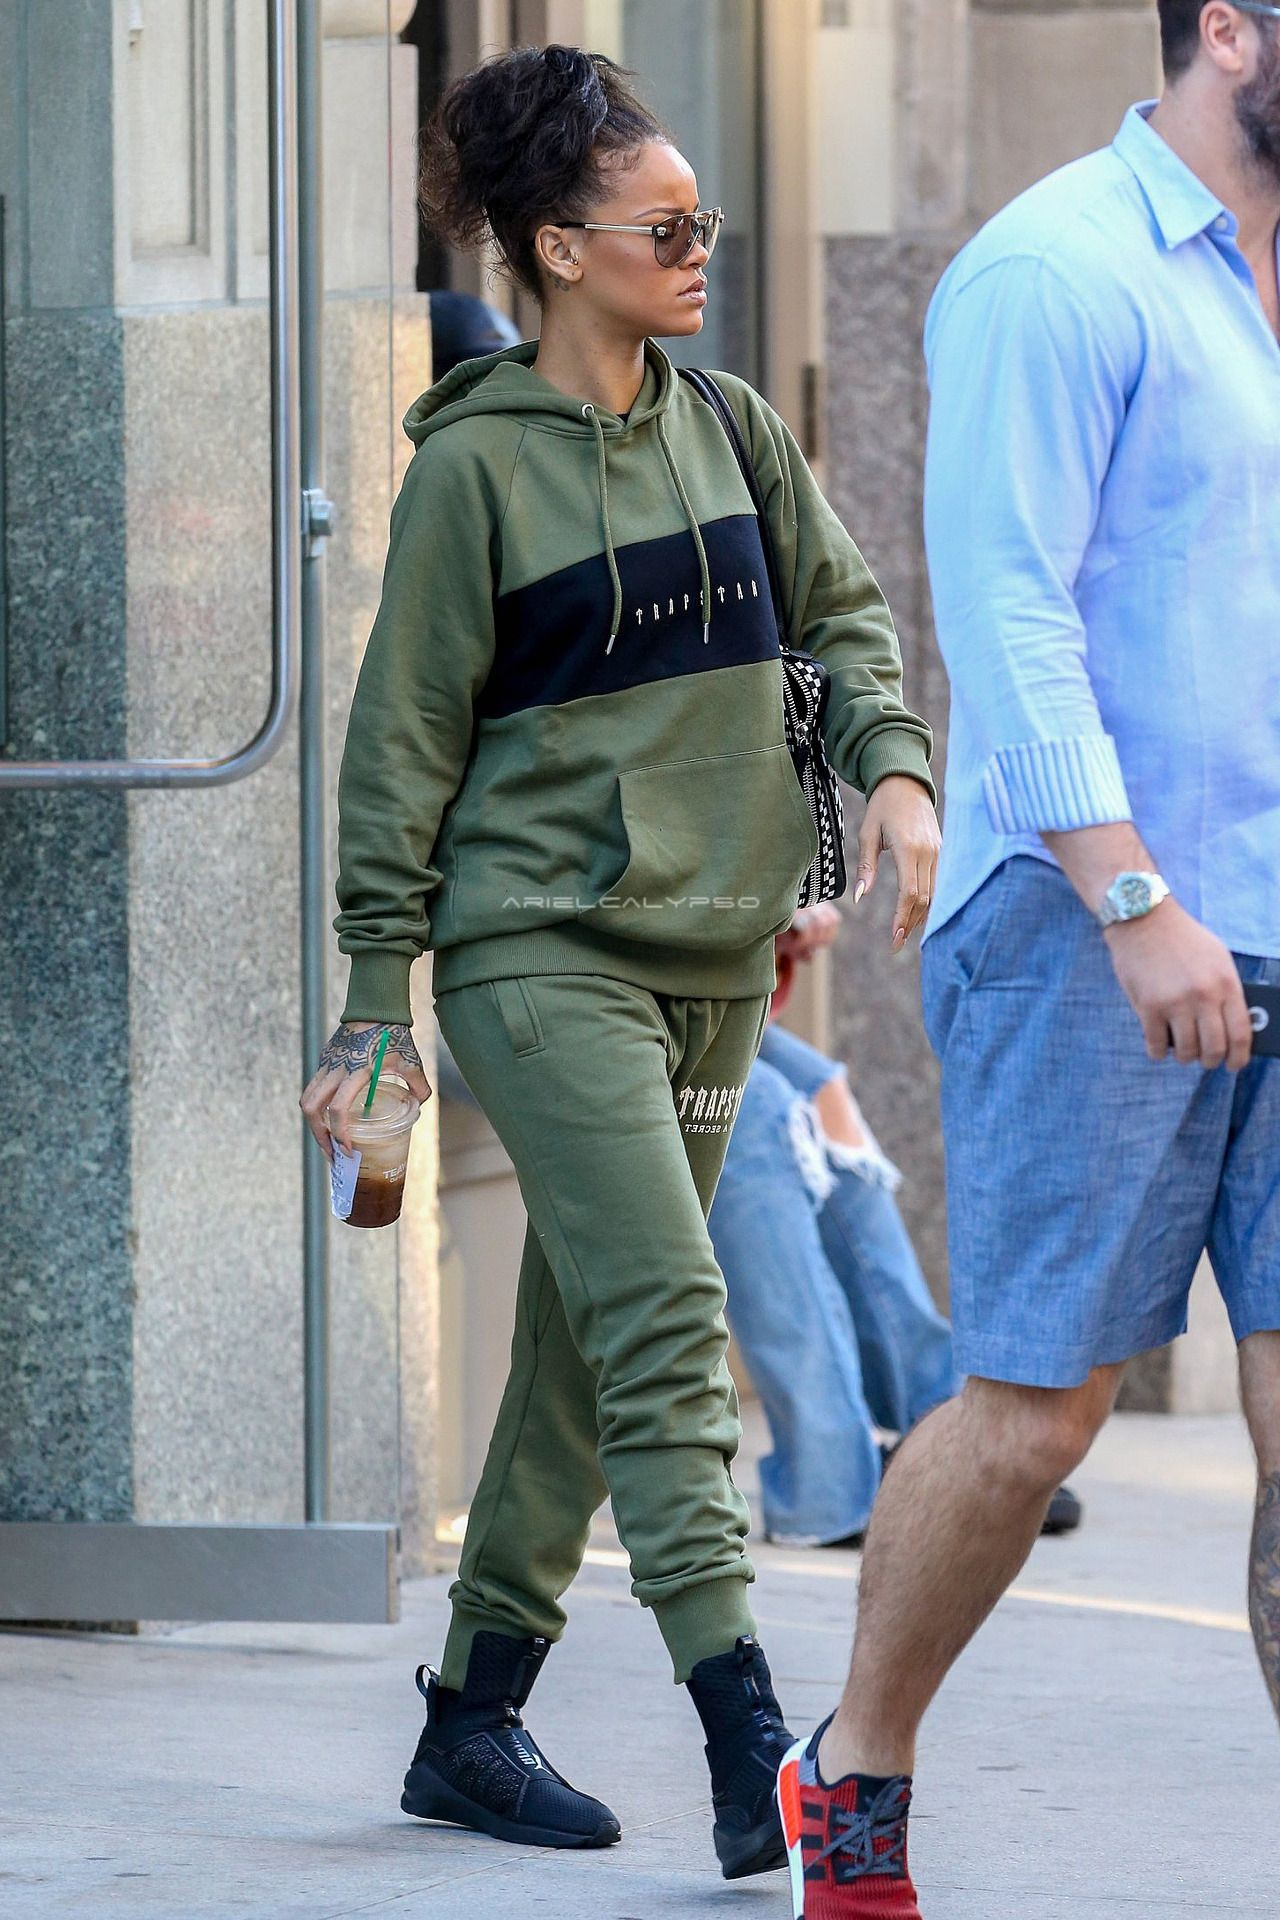 Rihanna 23rd august outfit, Casual wear